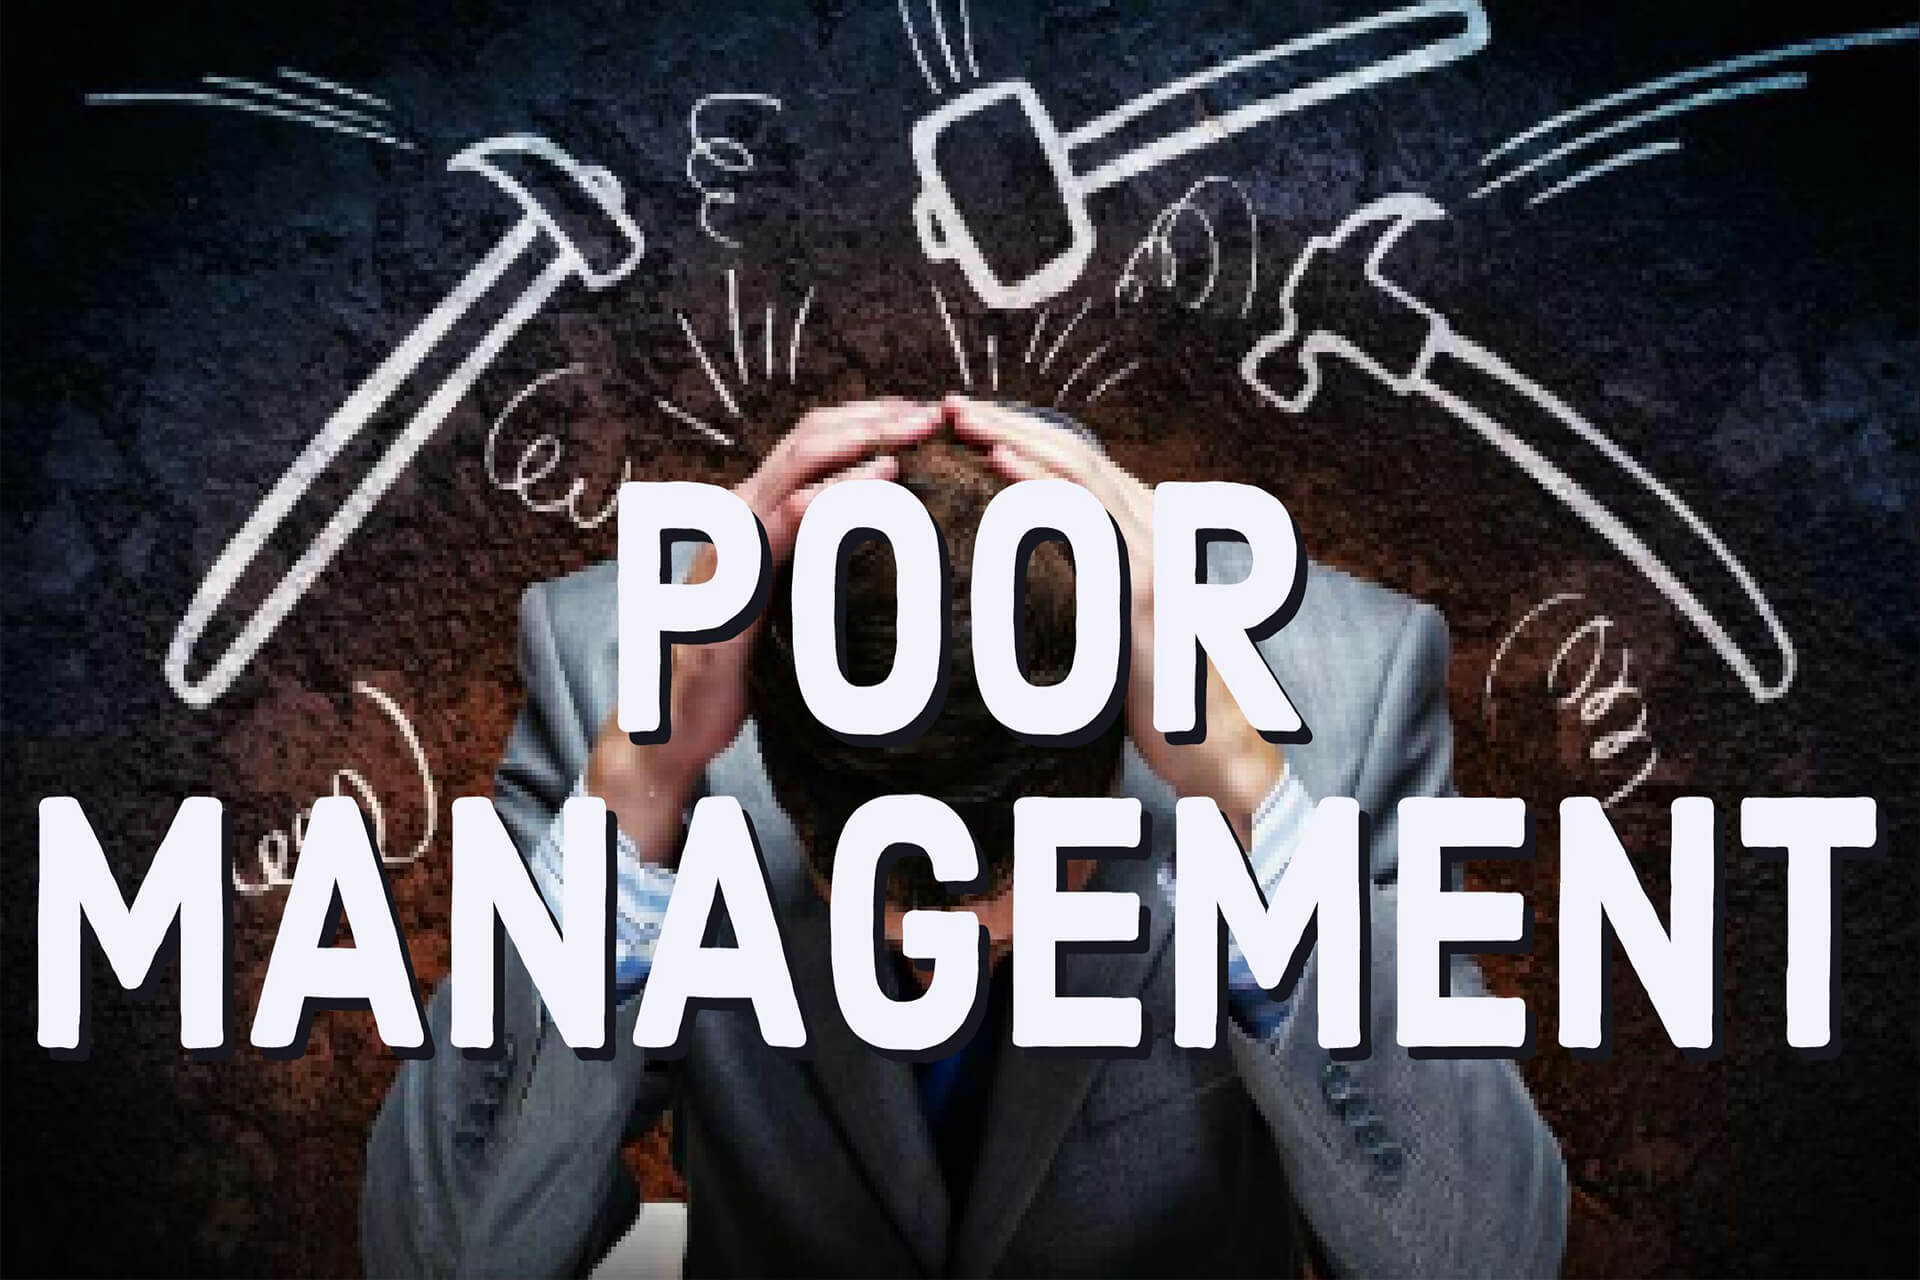 Poor Management is the main reason for failure